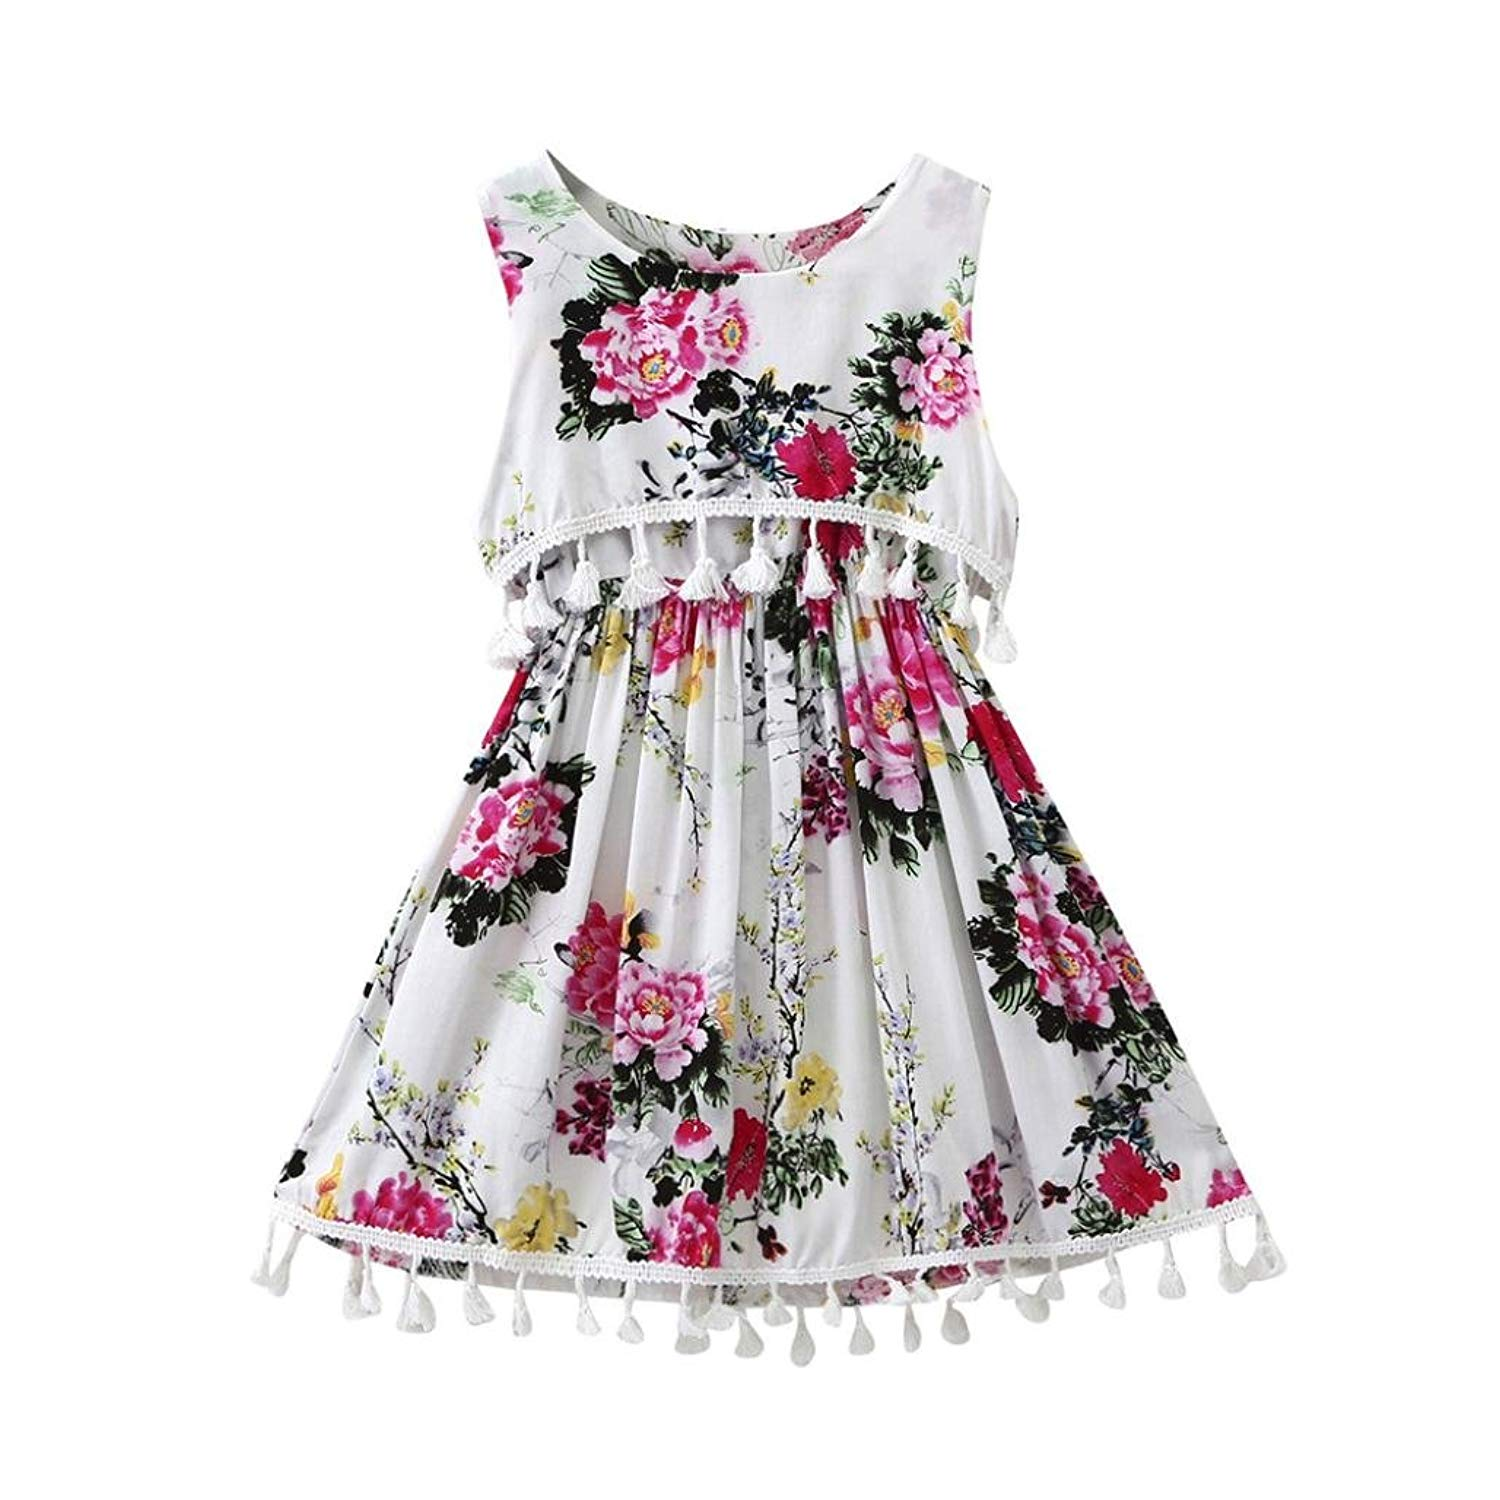 TiTCool Little Girls Summer Vintage Dress, Sleeveless Ethnic Style Tassel Flower Printed Dress Skirt Size 1-4T